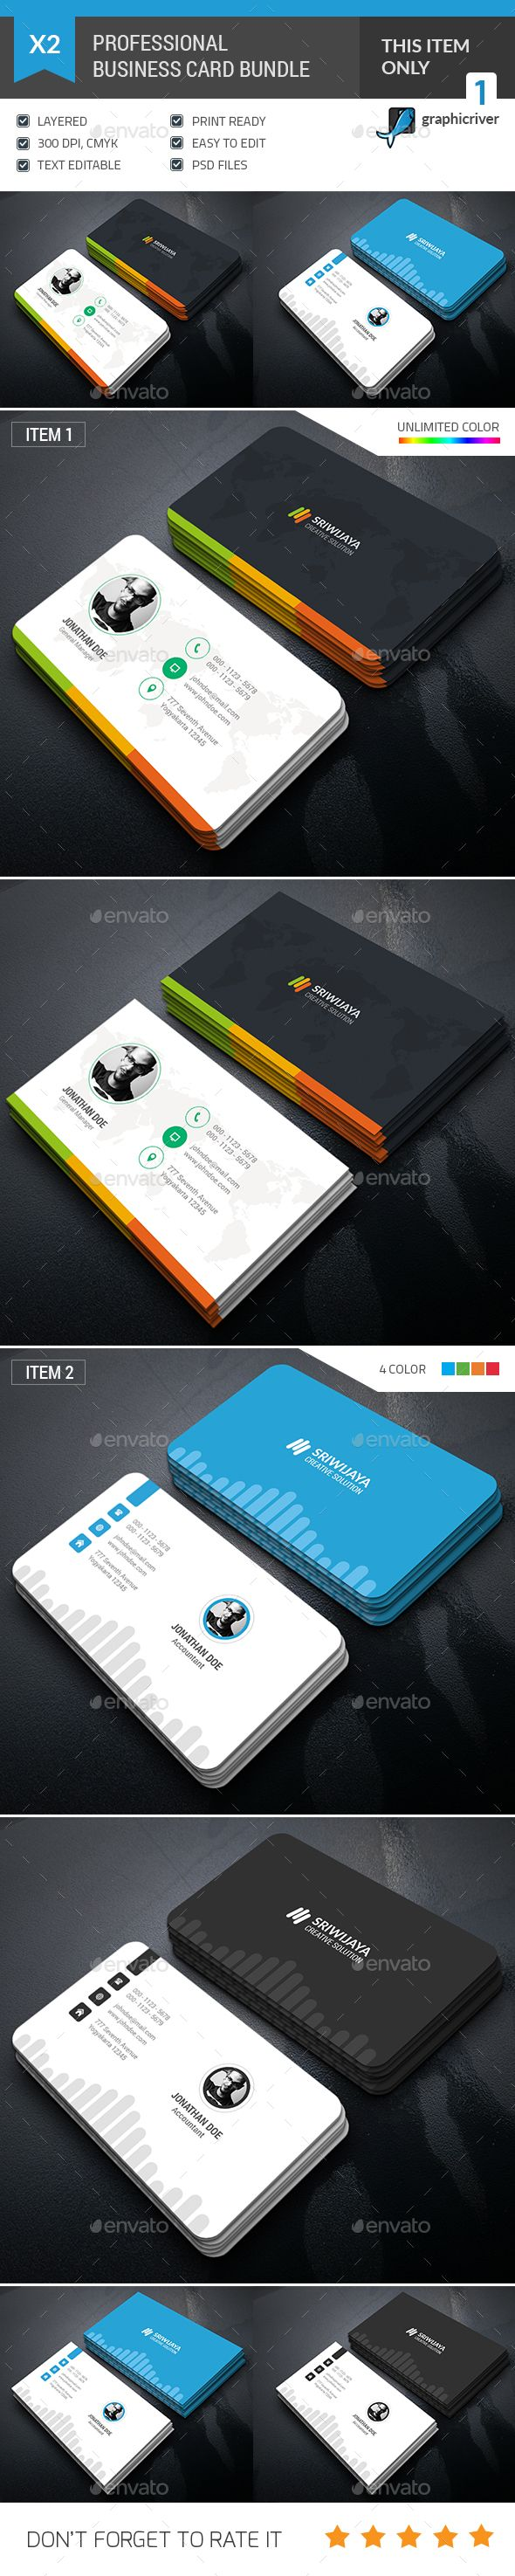 2 Business Cards Templates PSD. Download here: http://graphicriver.net/item/business-card-bundle/16154158?ref=ksioks